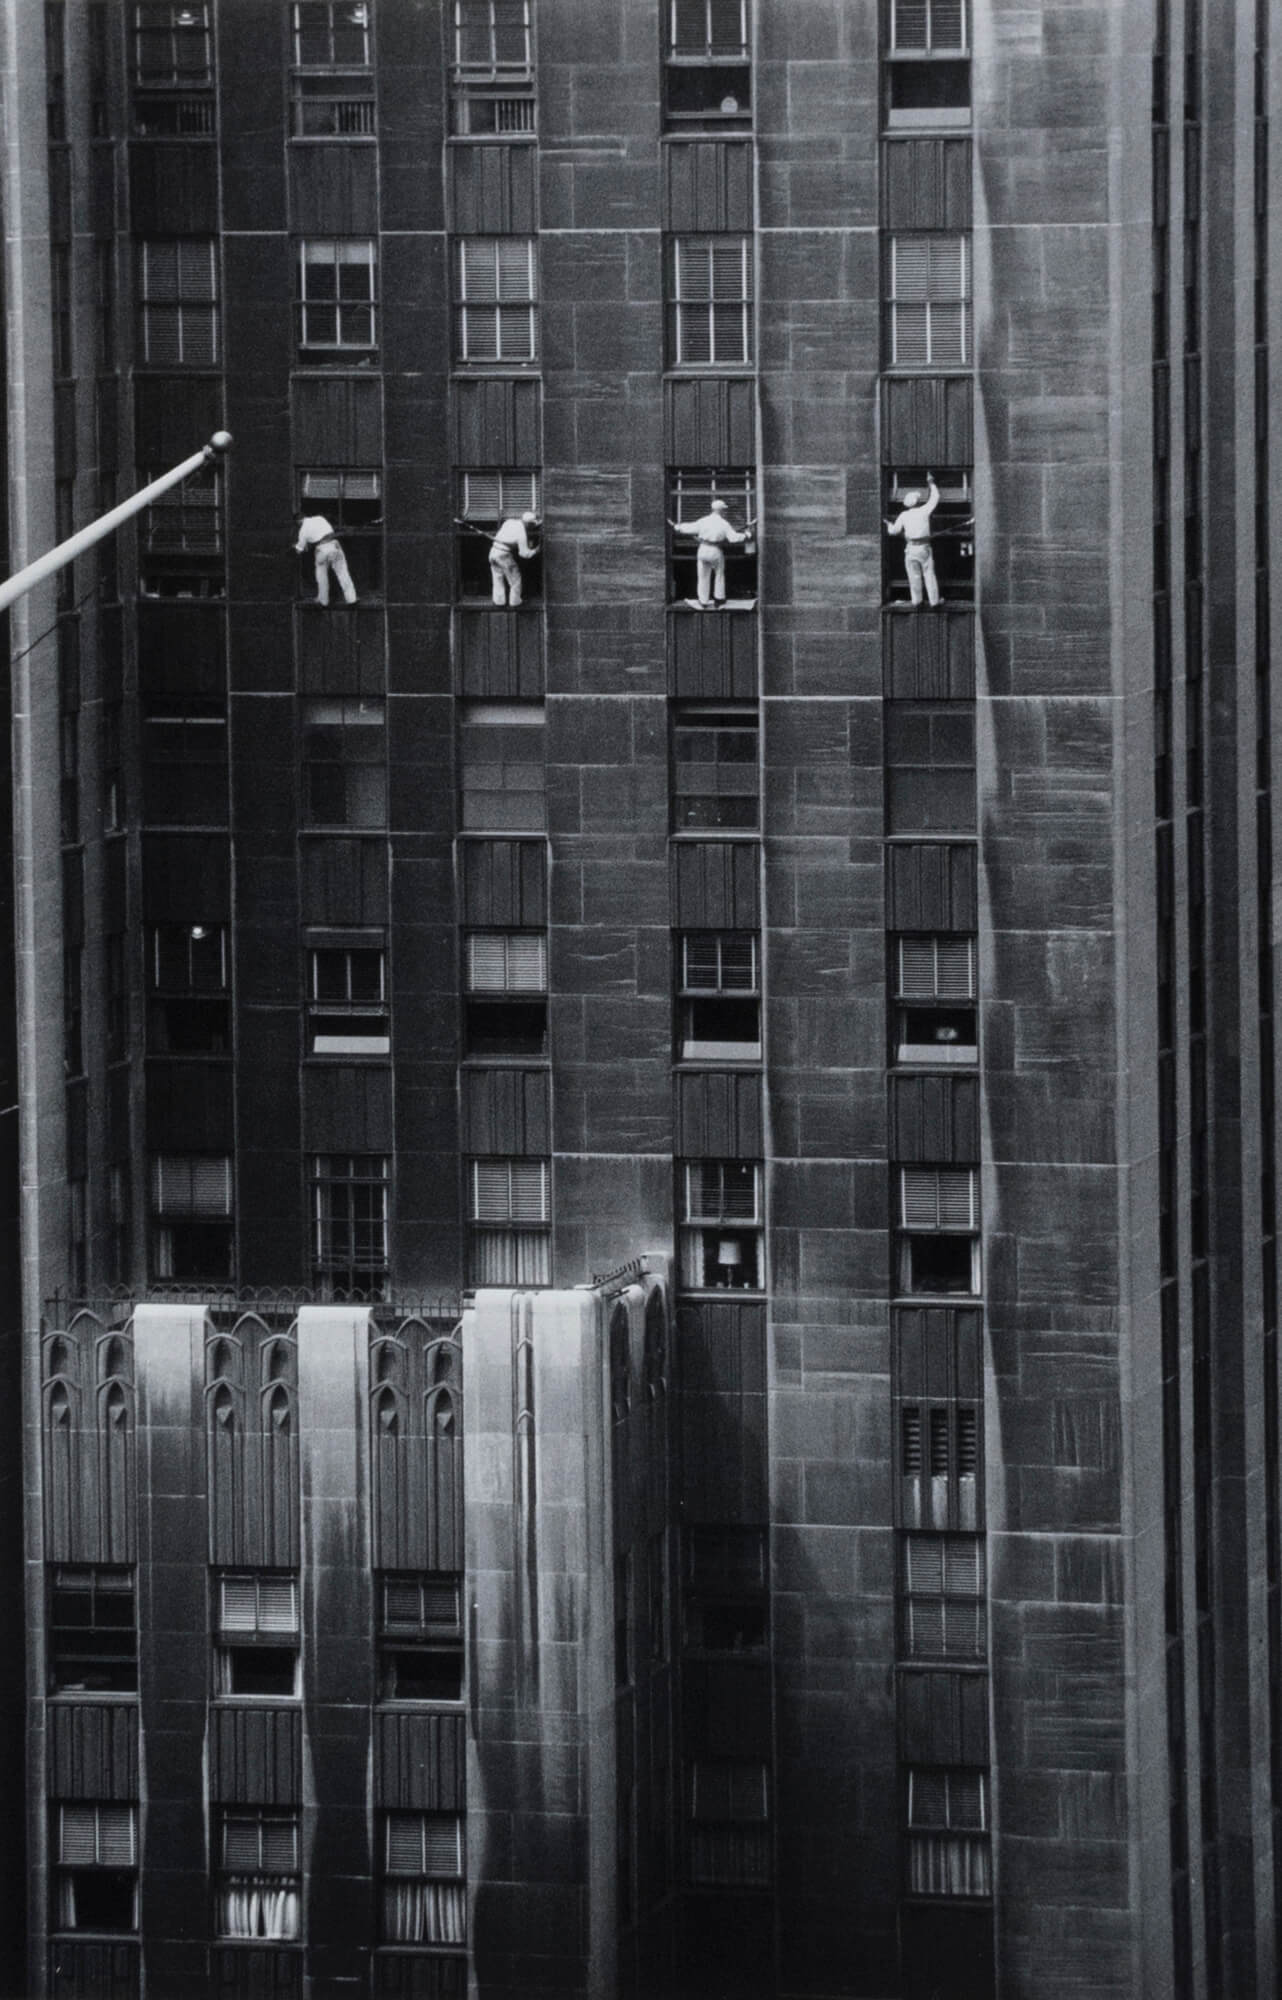 Forty-Eighth Street window washers, New York City, USA - Inge Morath | FFOTO